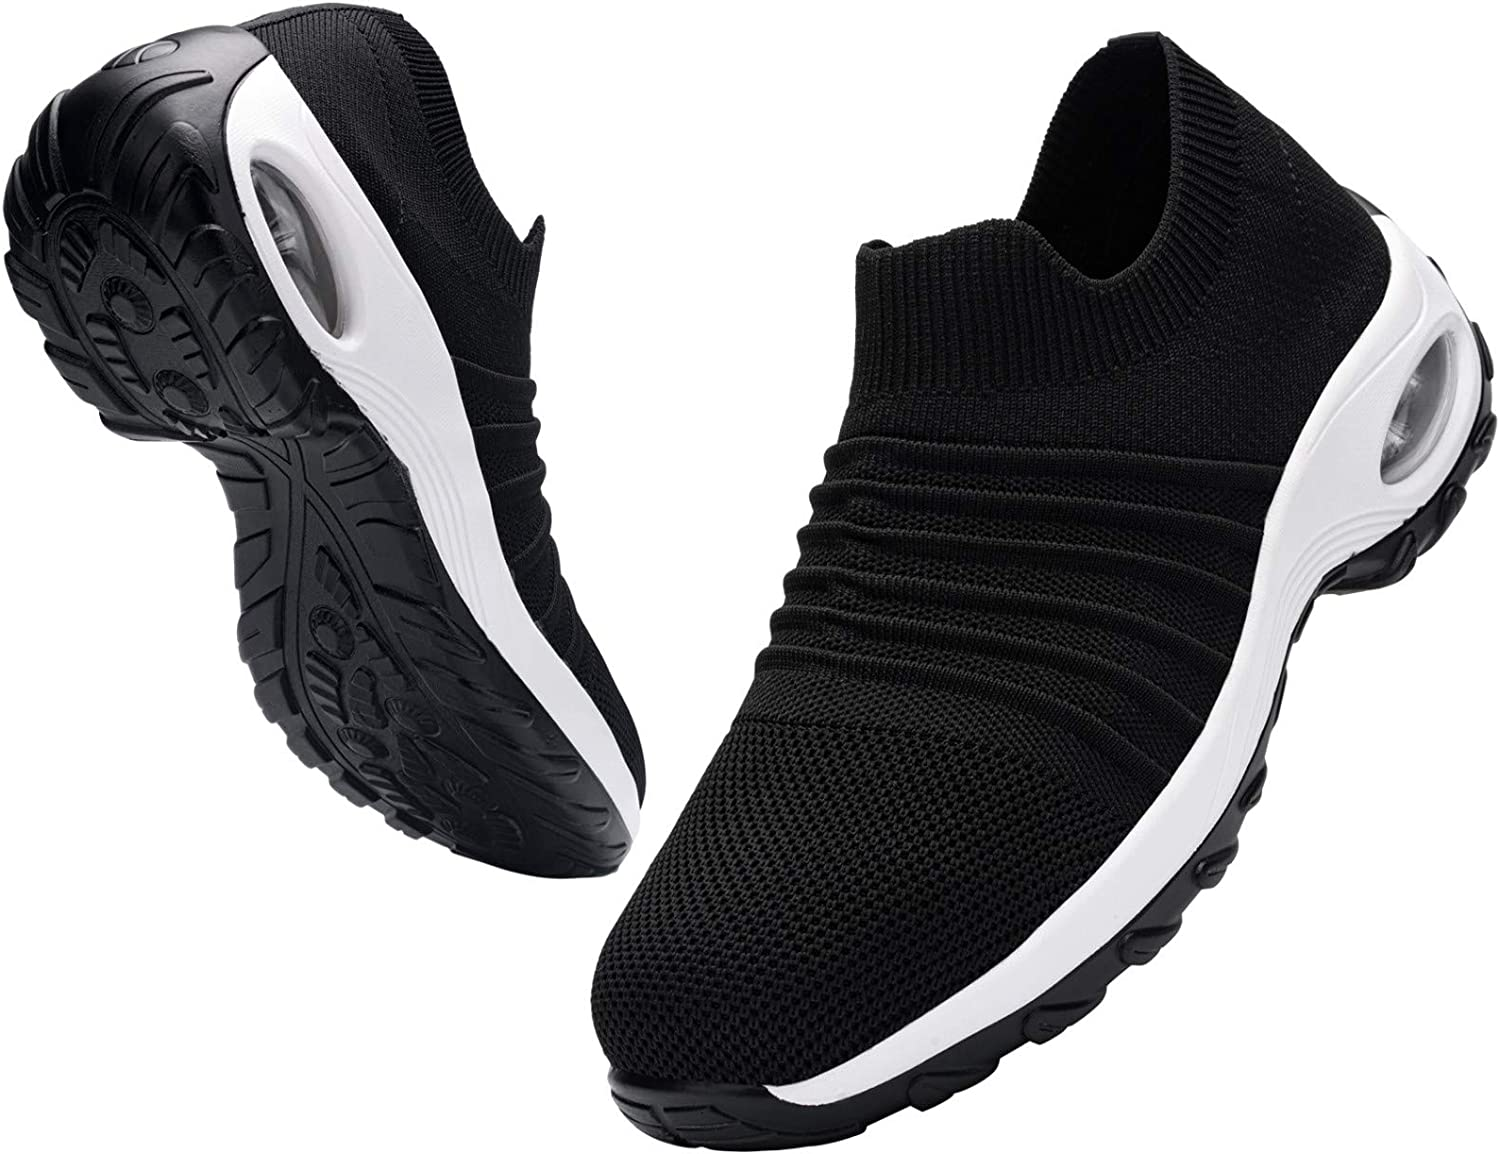 Shoes Women/'s Lightweight Toe Work Shoes Trainers Casual Walking Sneakers